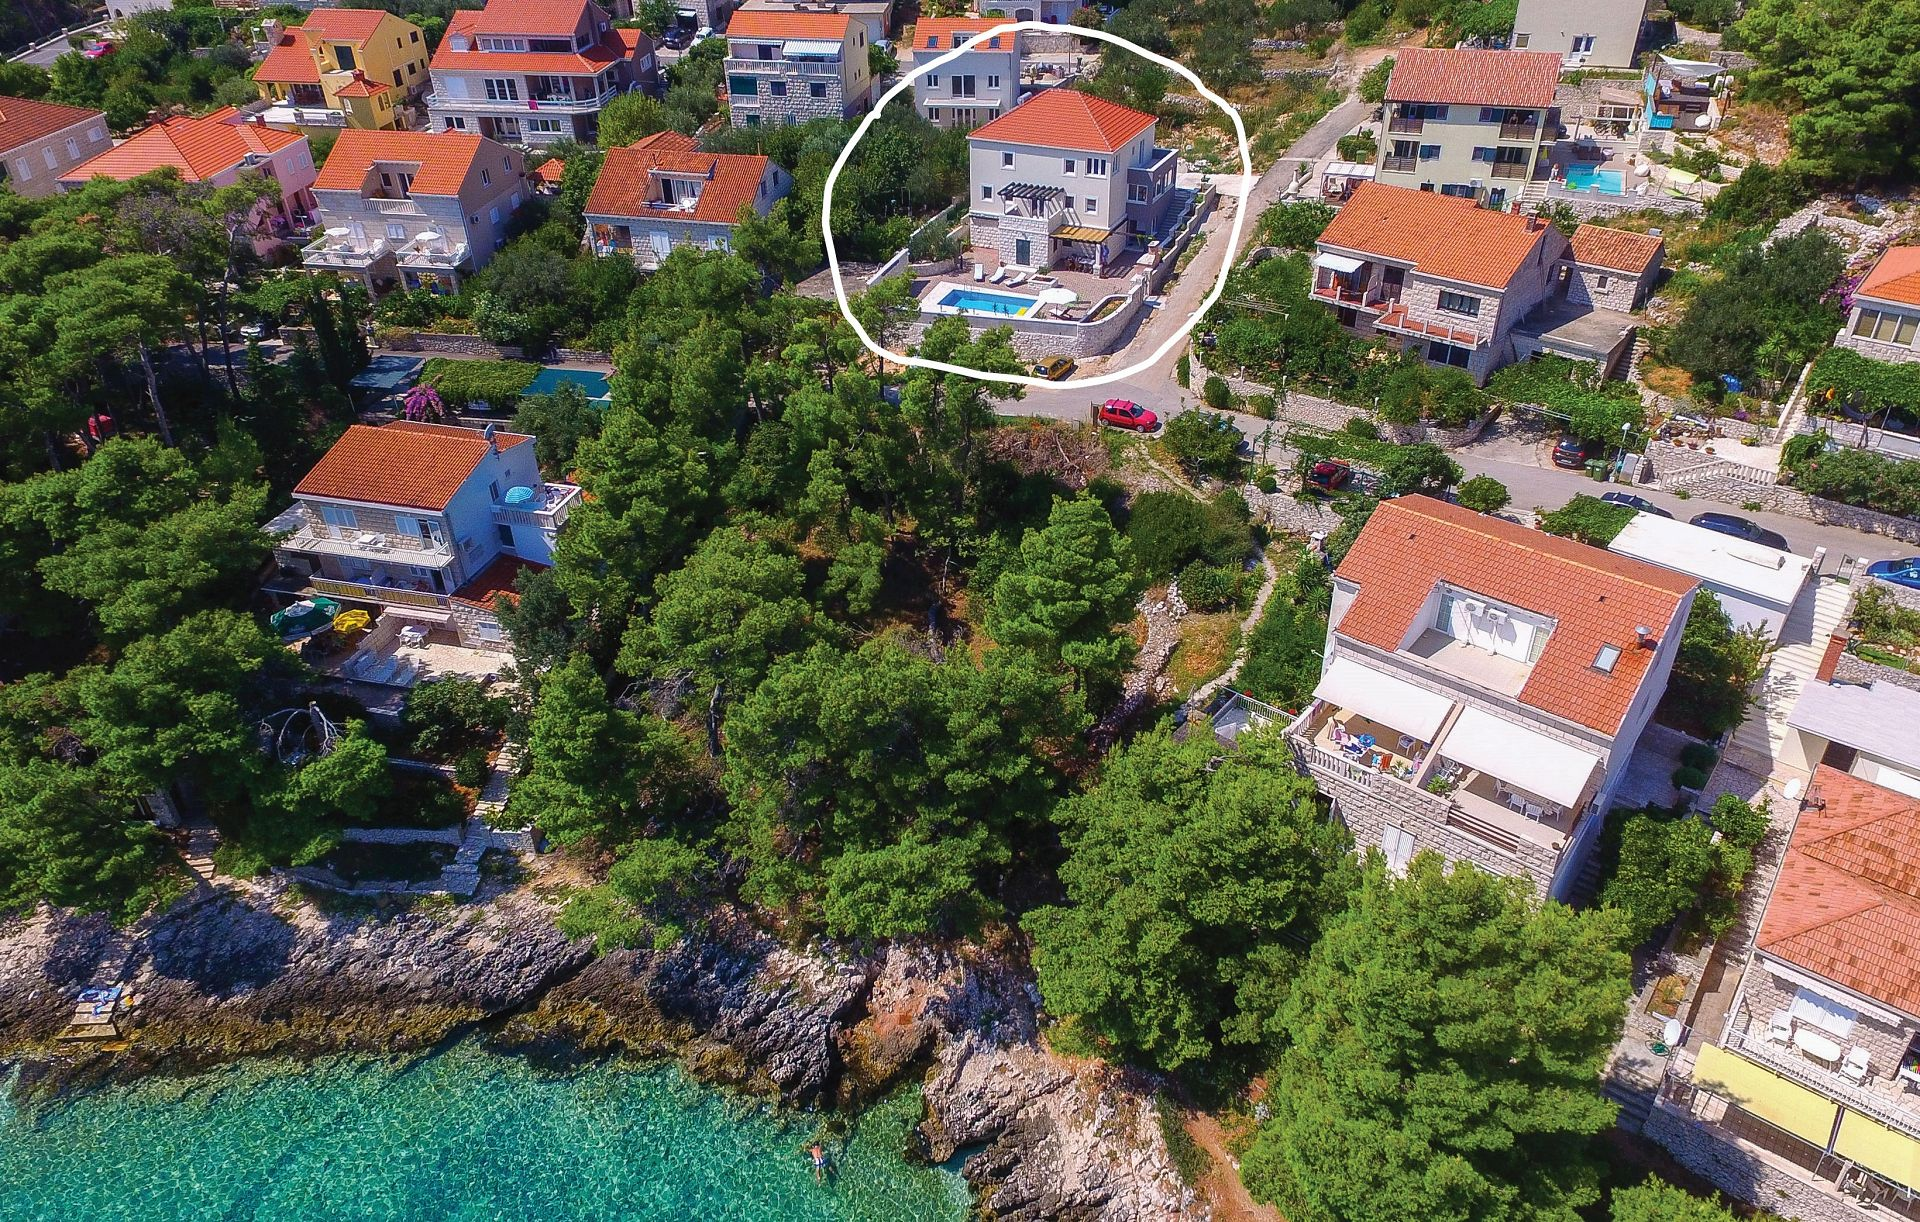 Holiday Homes, Lumbarda, Island of Korčula - Holiday houses, villas  Sandra